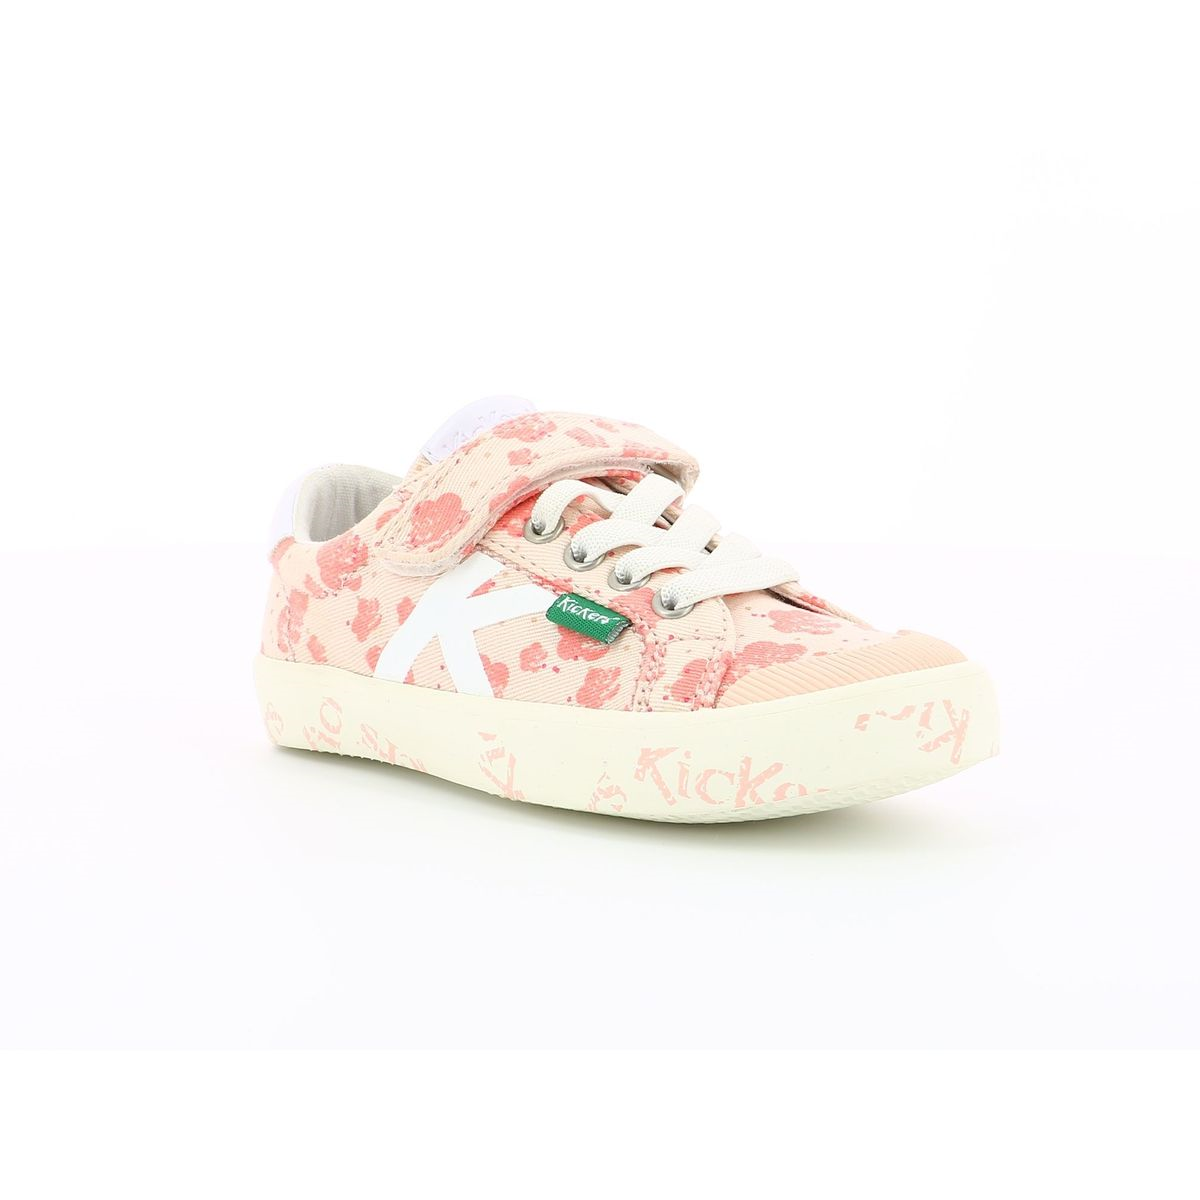 Kickers fille gody rose1323301_4